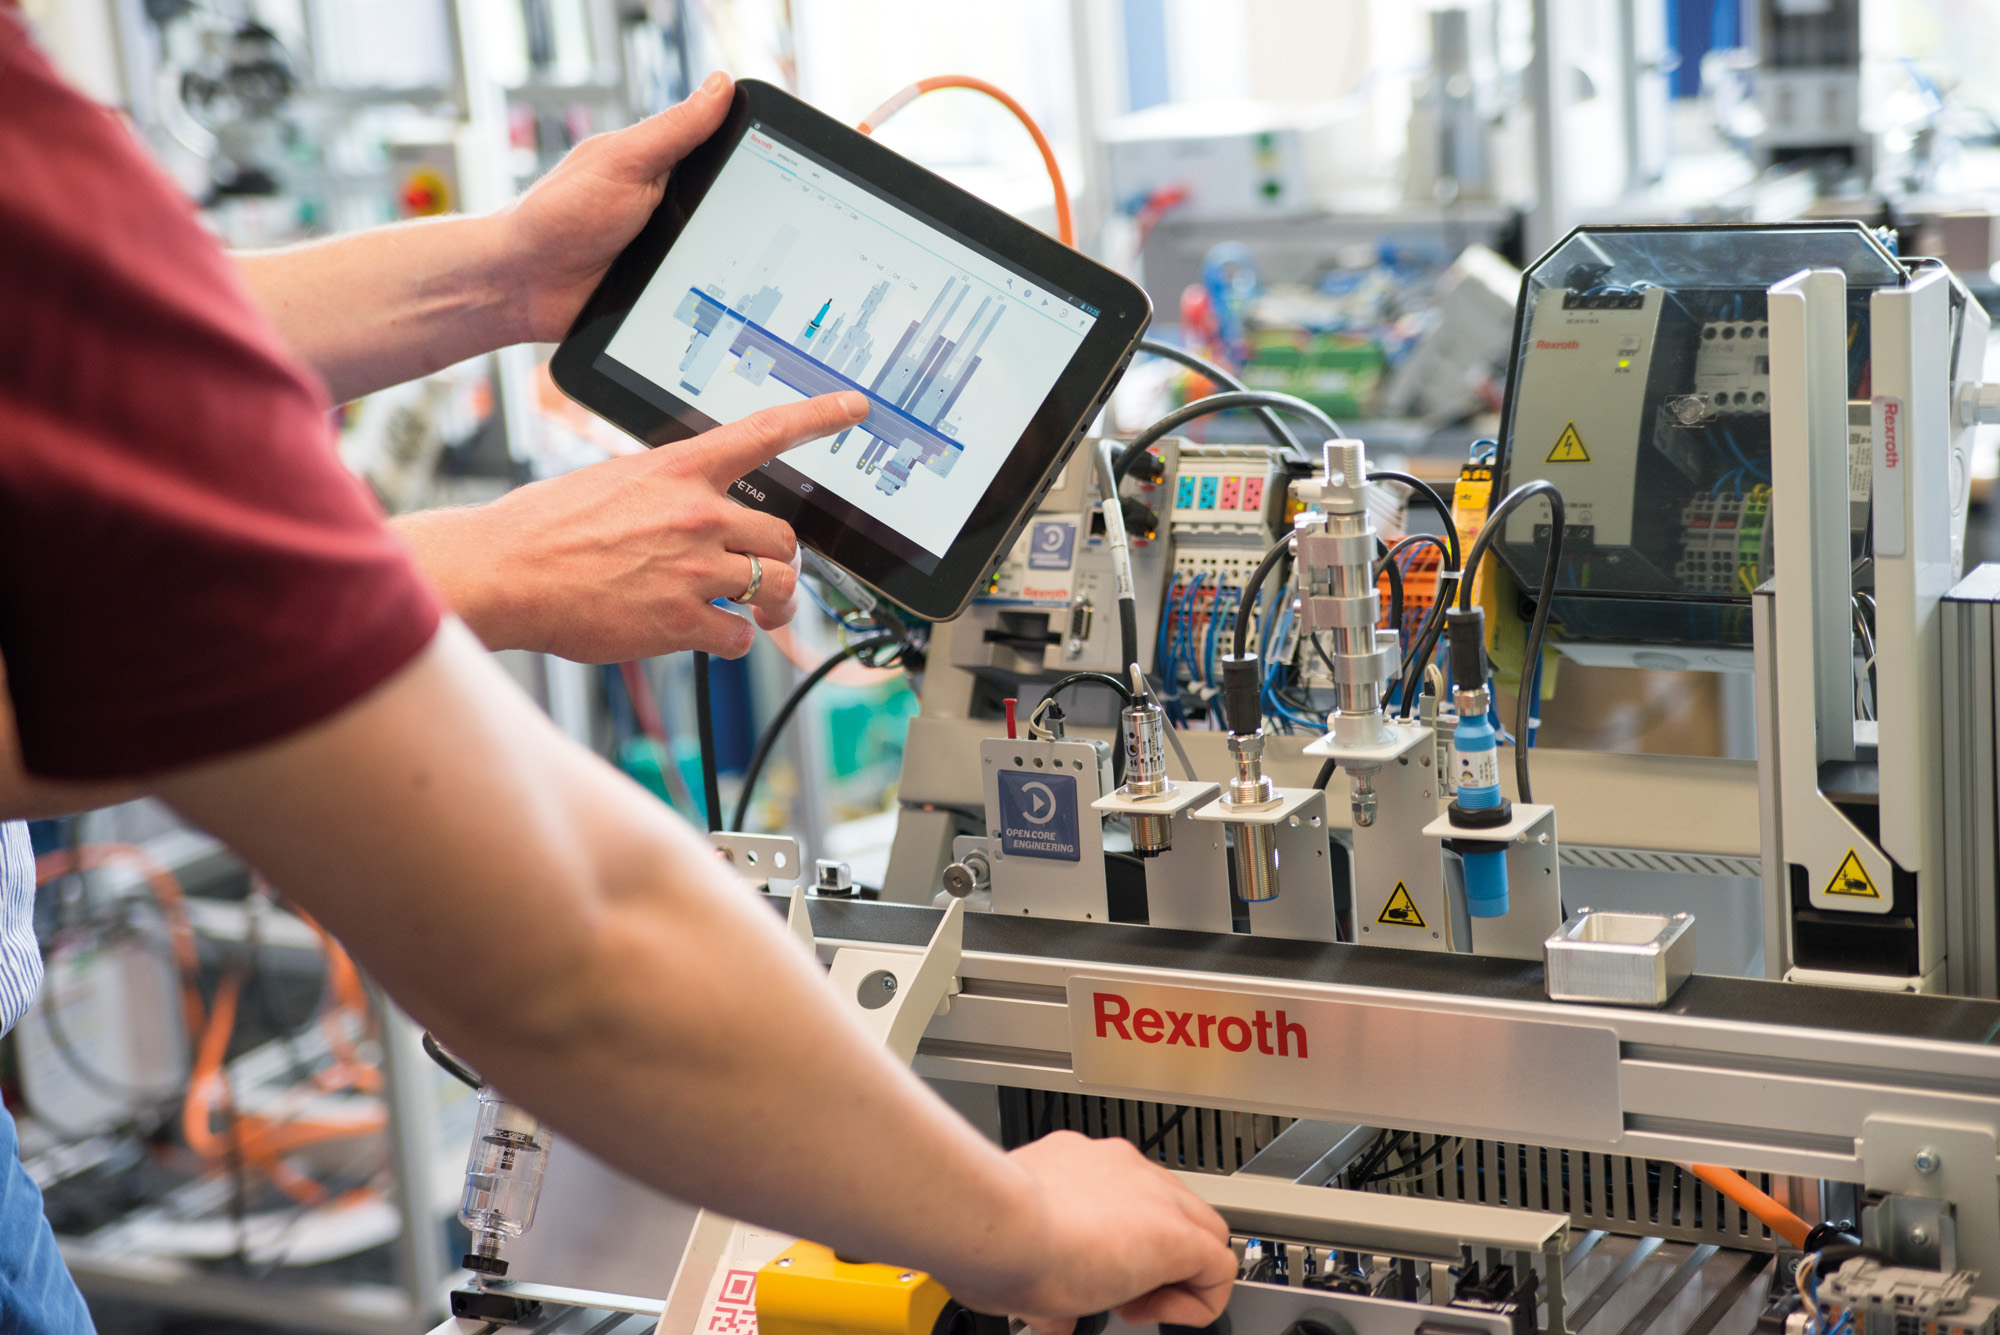 Training systems for Industry 4.0